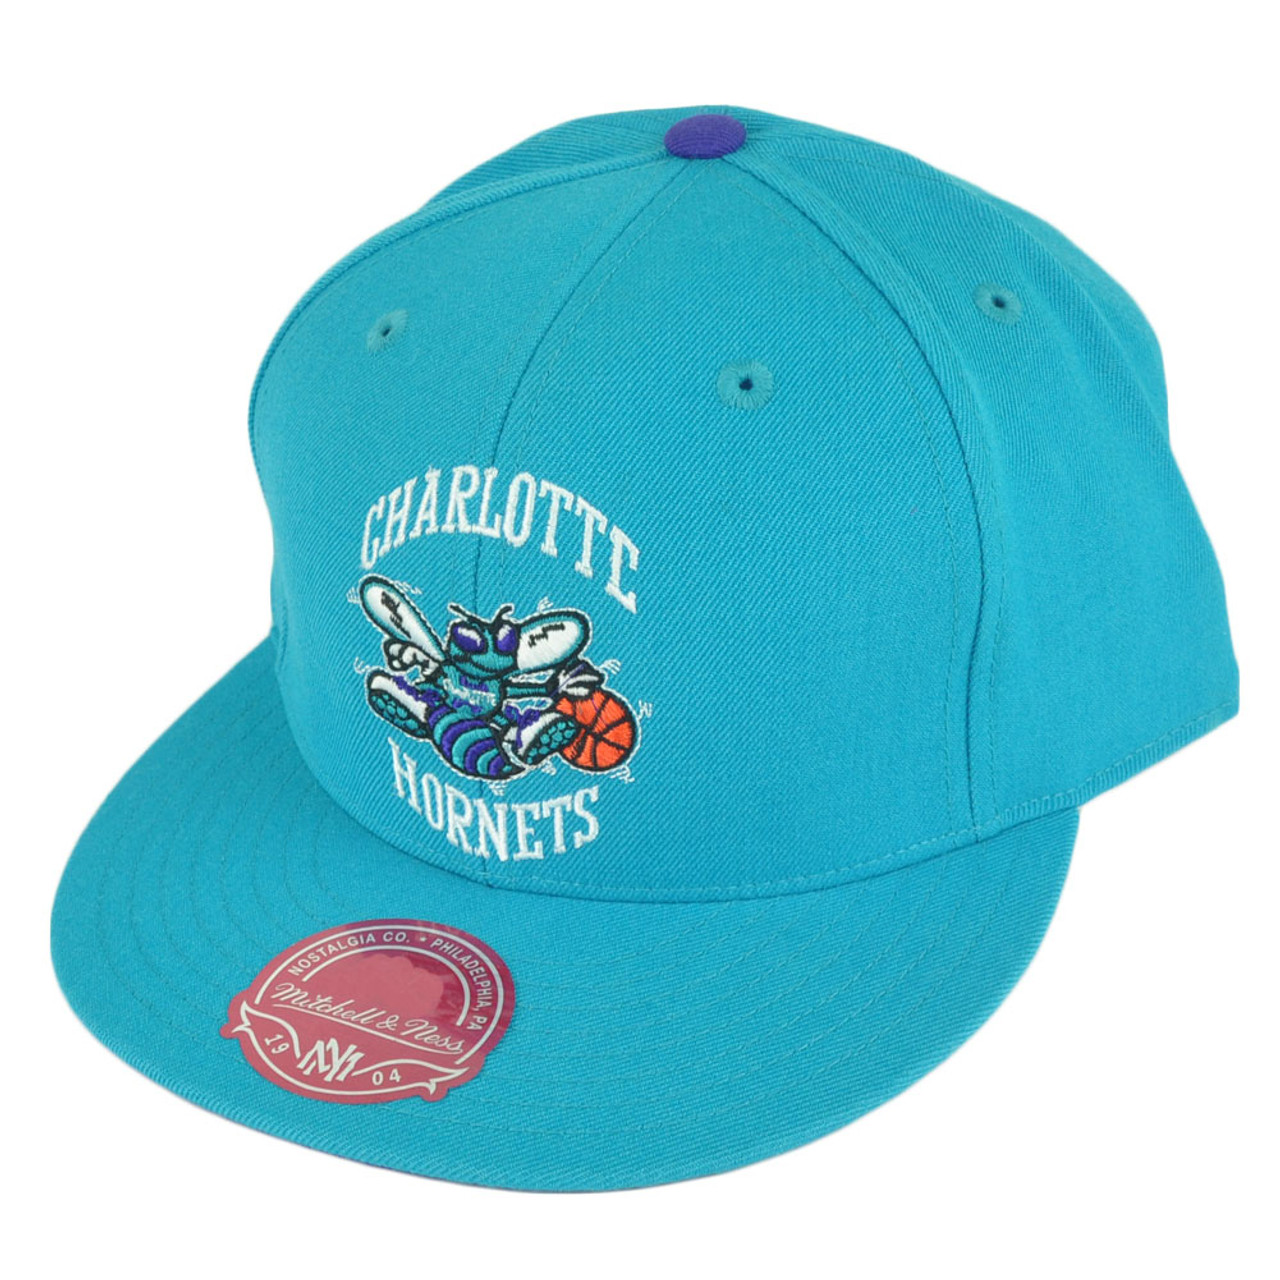 the latest 04ab3 14a6e NBA Mitchell Ness TK07 Charlotte Hornets Team Second Fitted Hat Cap - Cap  Store Online.com